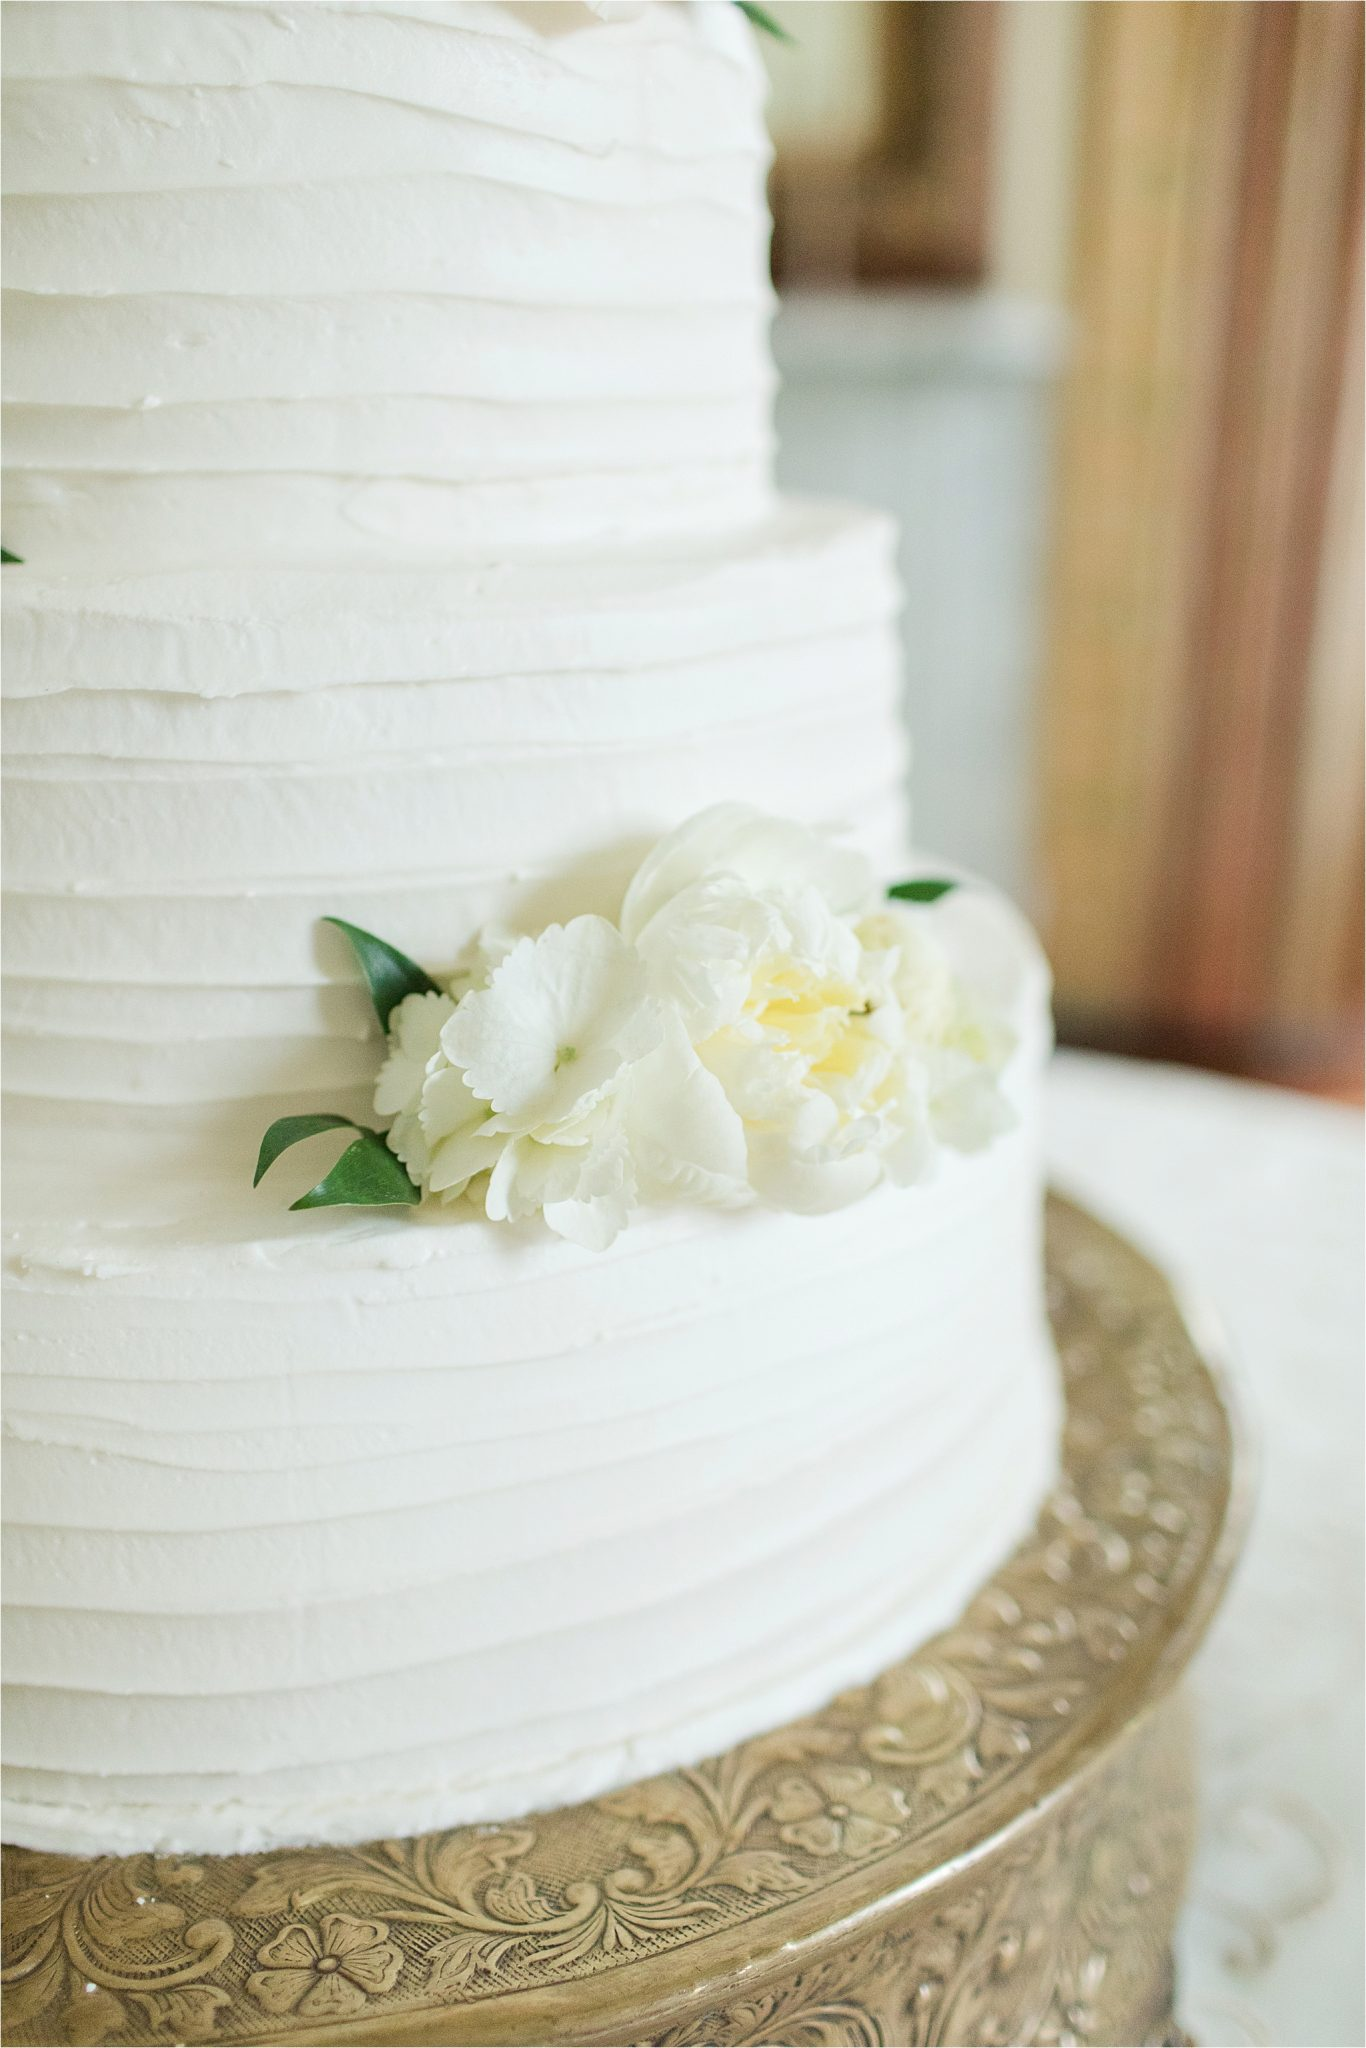 wedding cake-buttercream frosting-real flowers-ornate cake stand-rustic